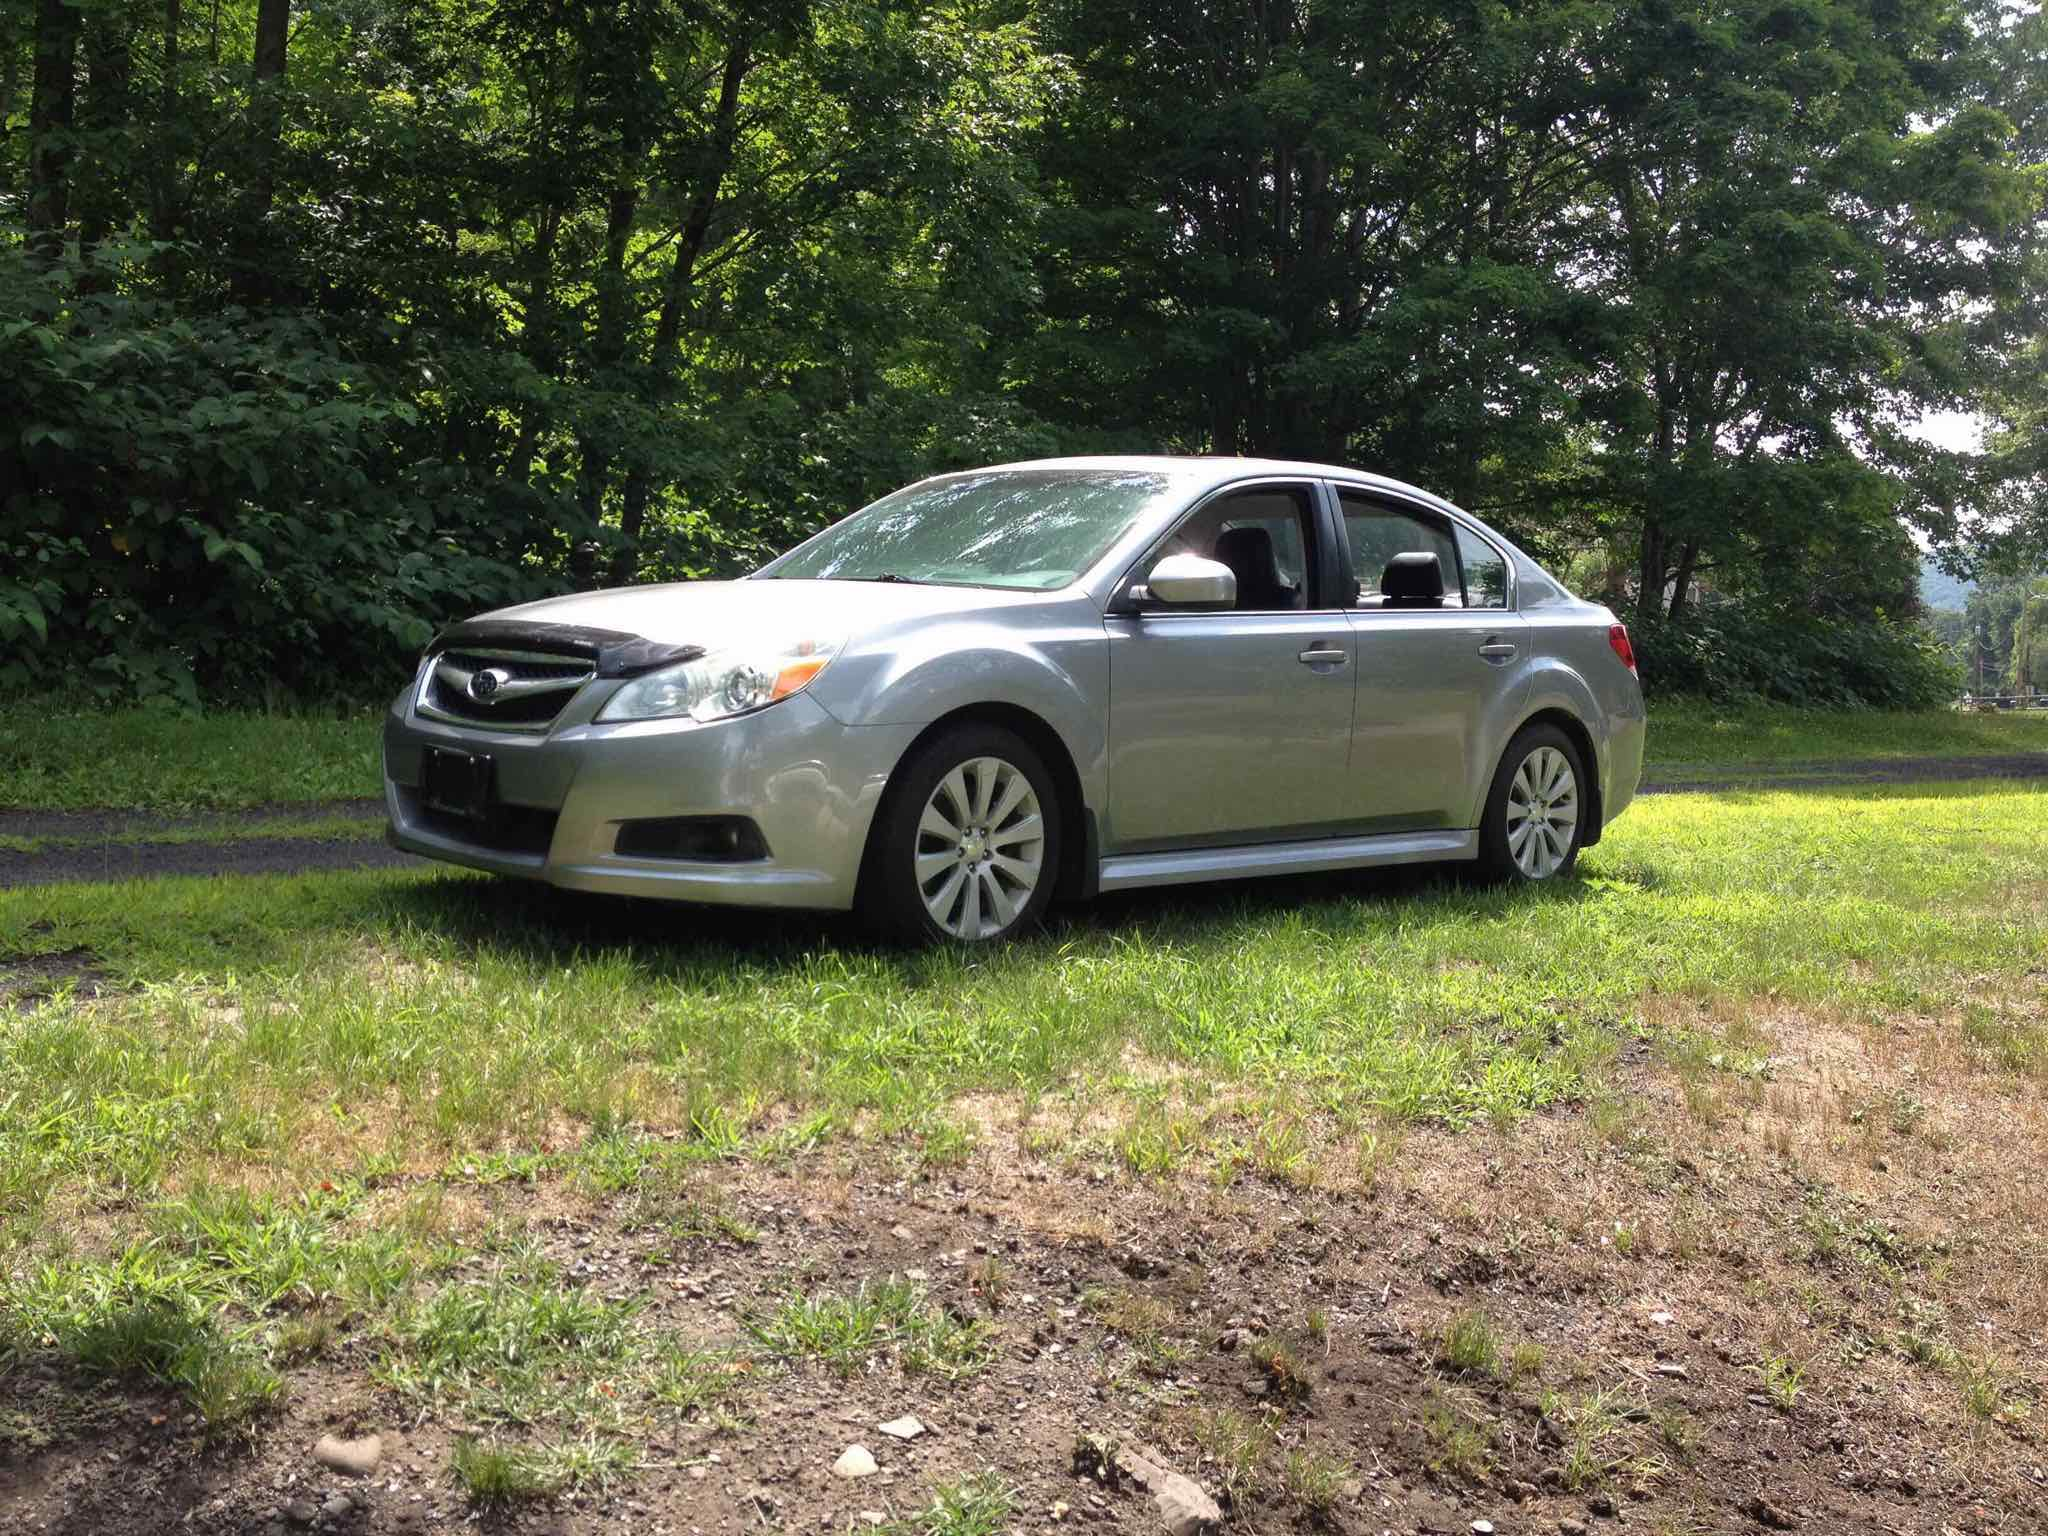 2011 legacy 3.6r sedan. lift questions. fact finding.